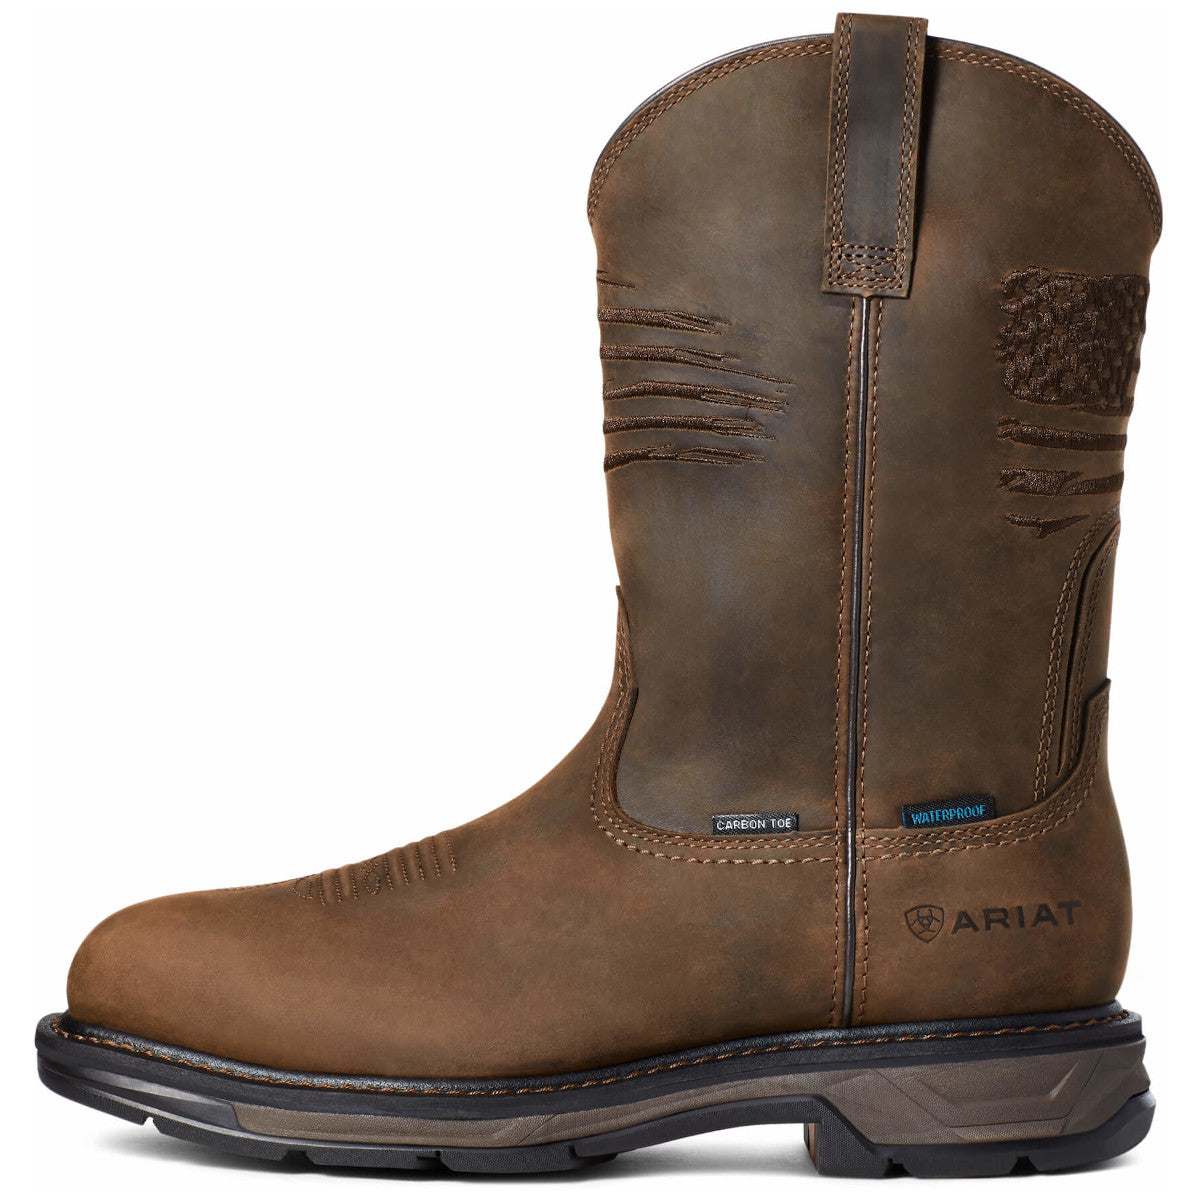 Ariat Men's WorkHog XT Patriot Waterproof Carbon Toe Work Boots